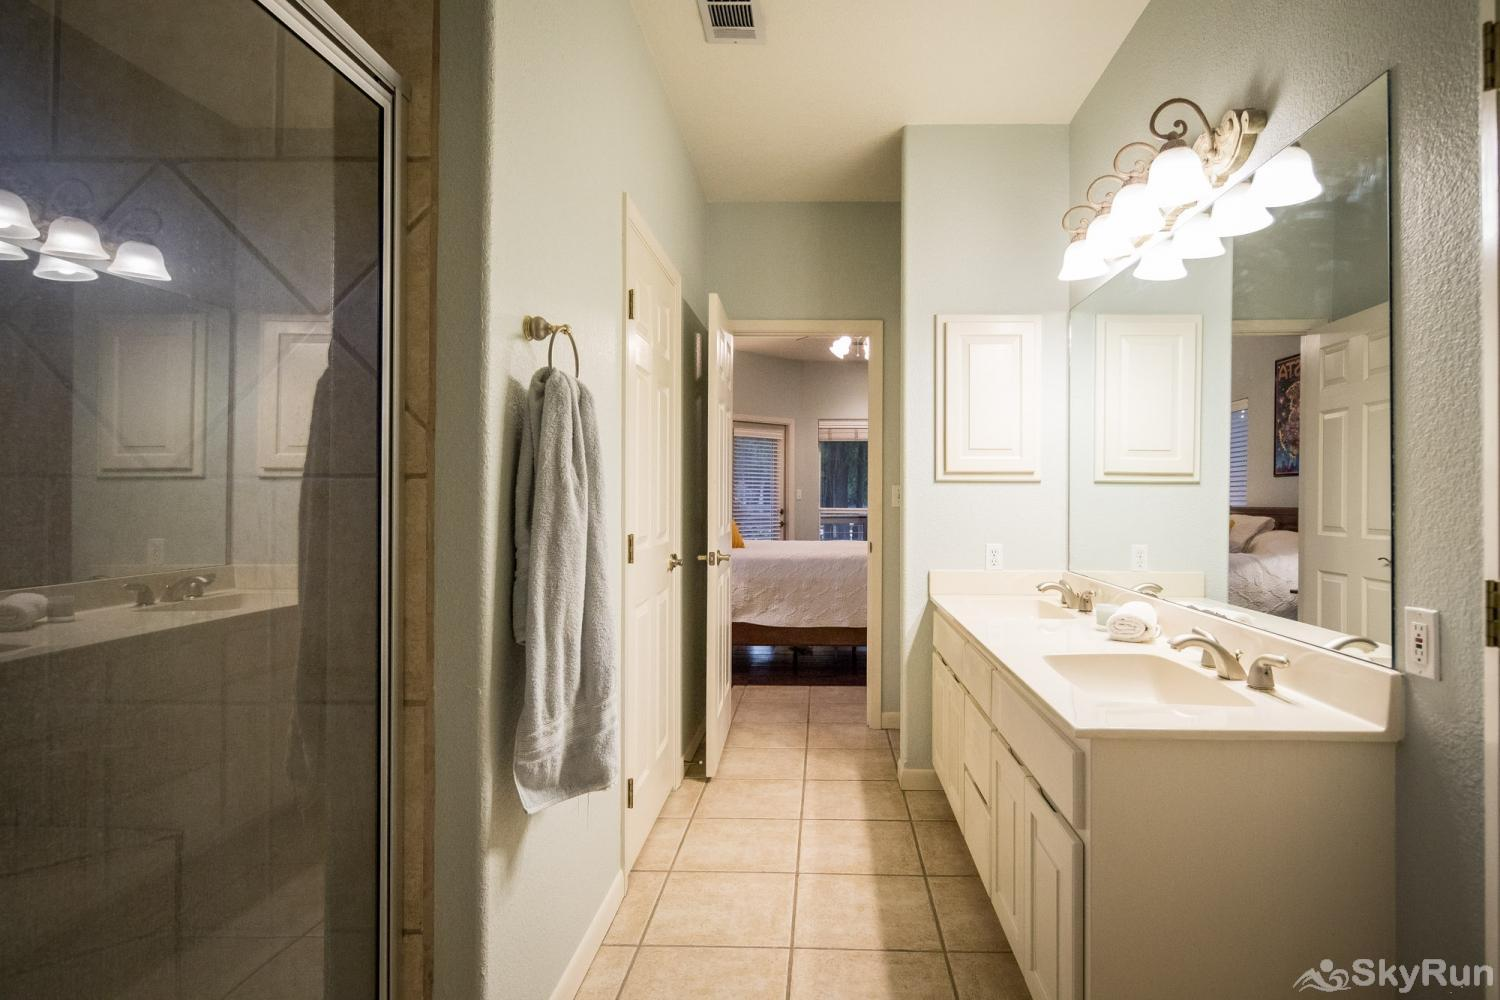 SERENITY SHORES Second Full Bathroom between Bedrooms